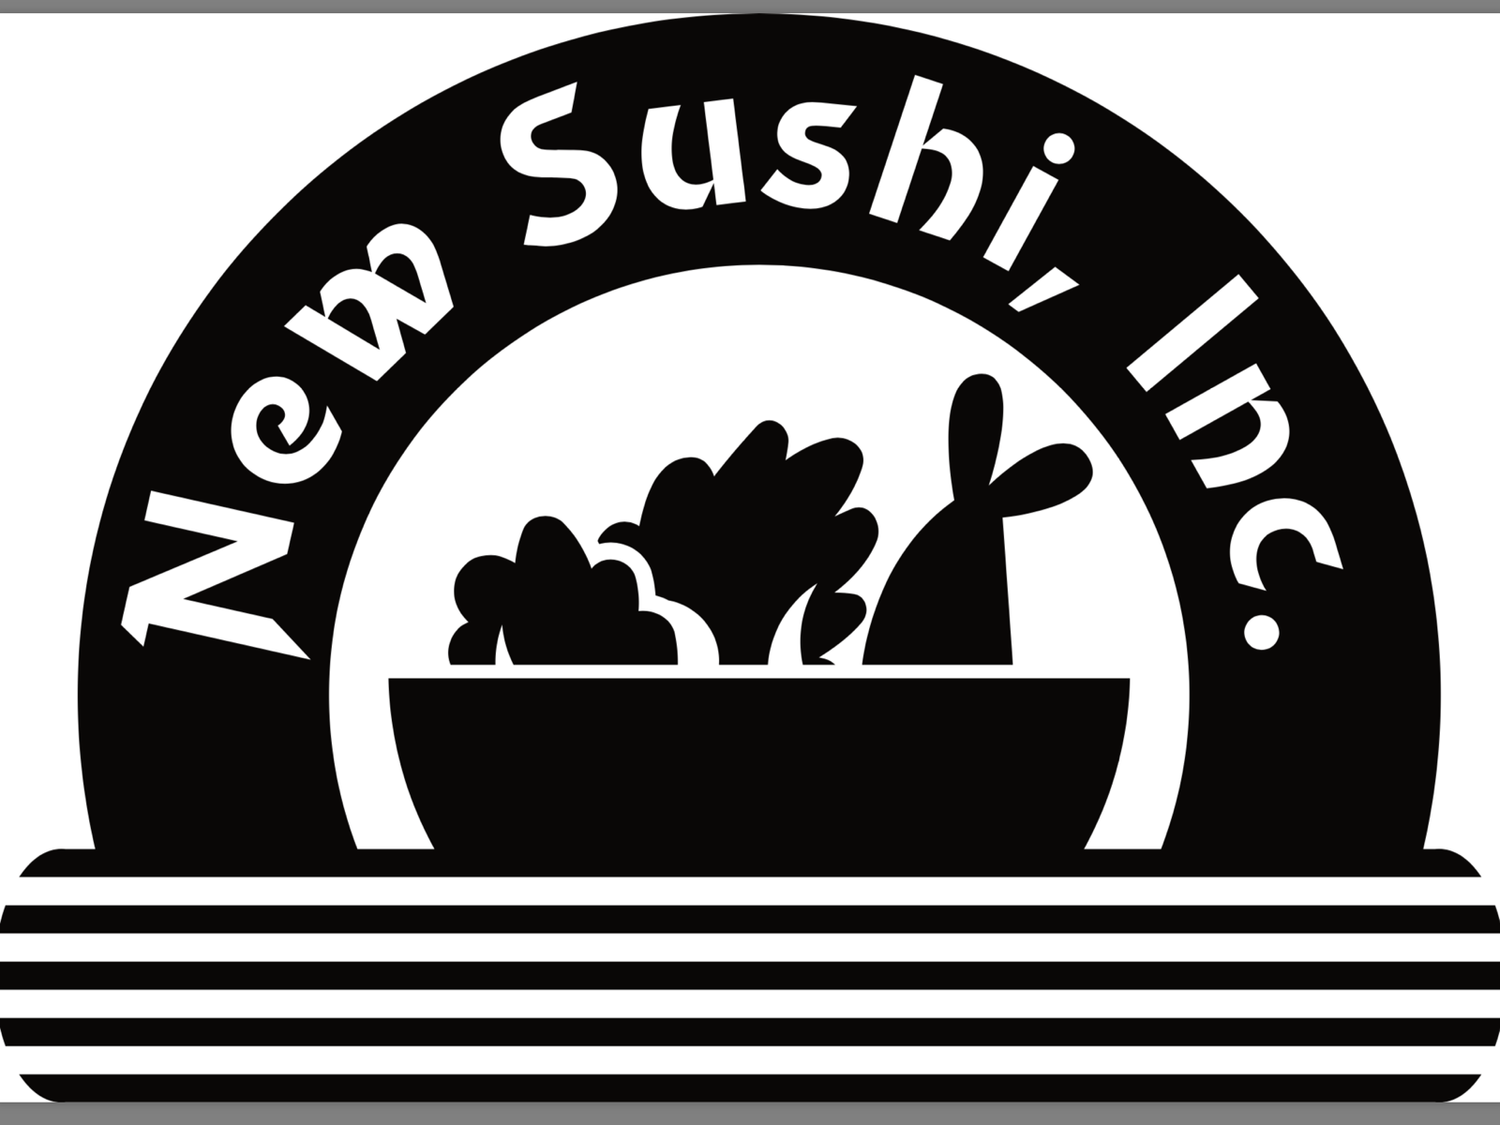 New Sushi Boston - Sushi Burrito in Boston, MA 02114 | Order Online from Sushirito Boston, MA